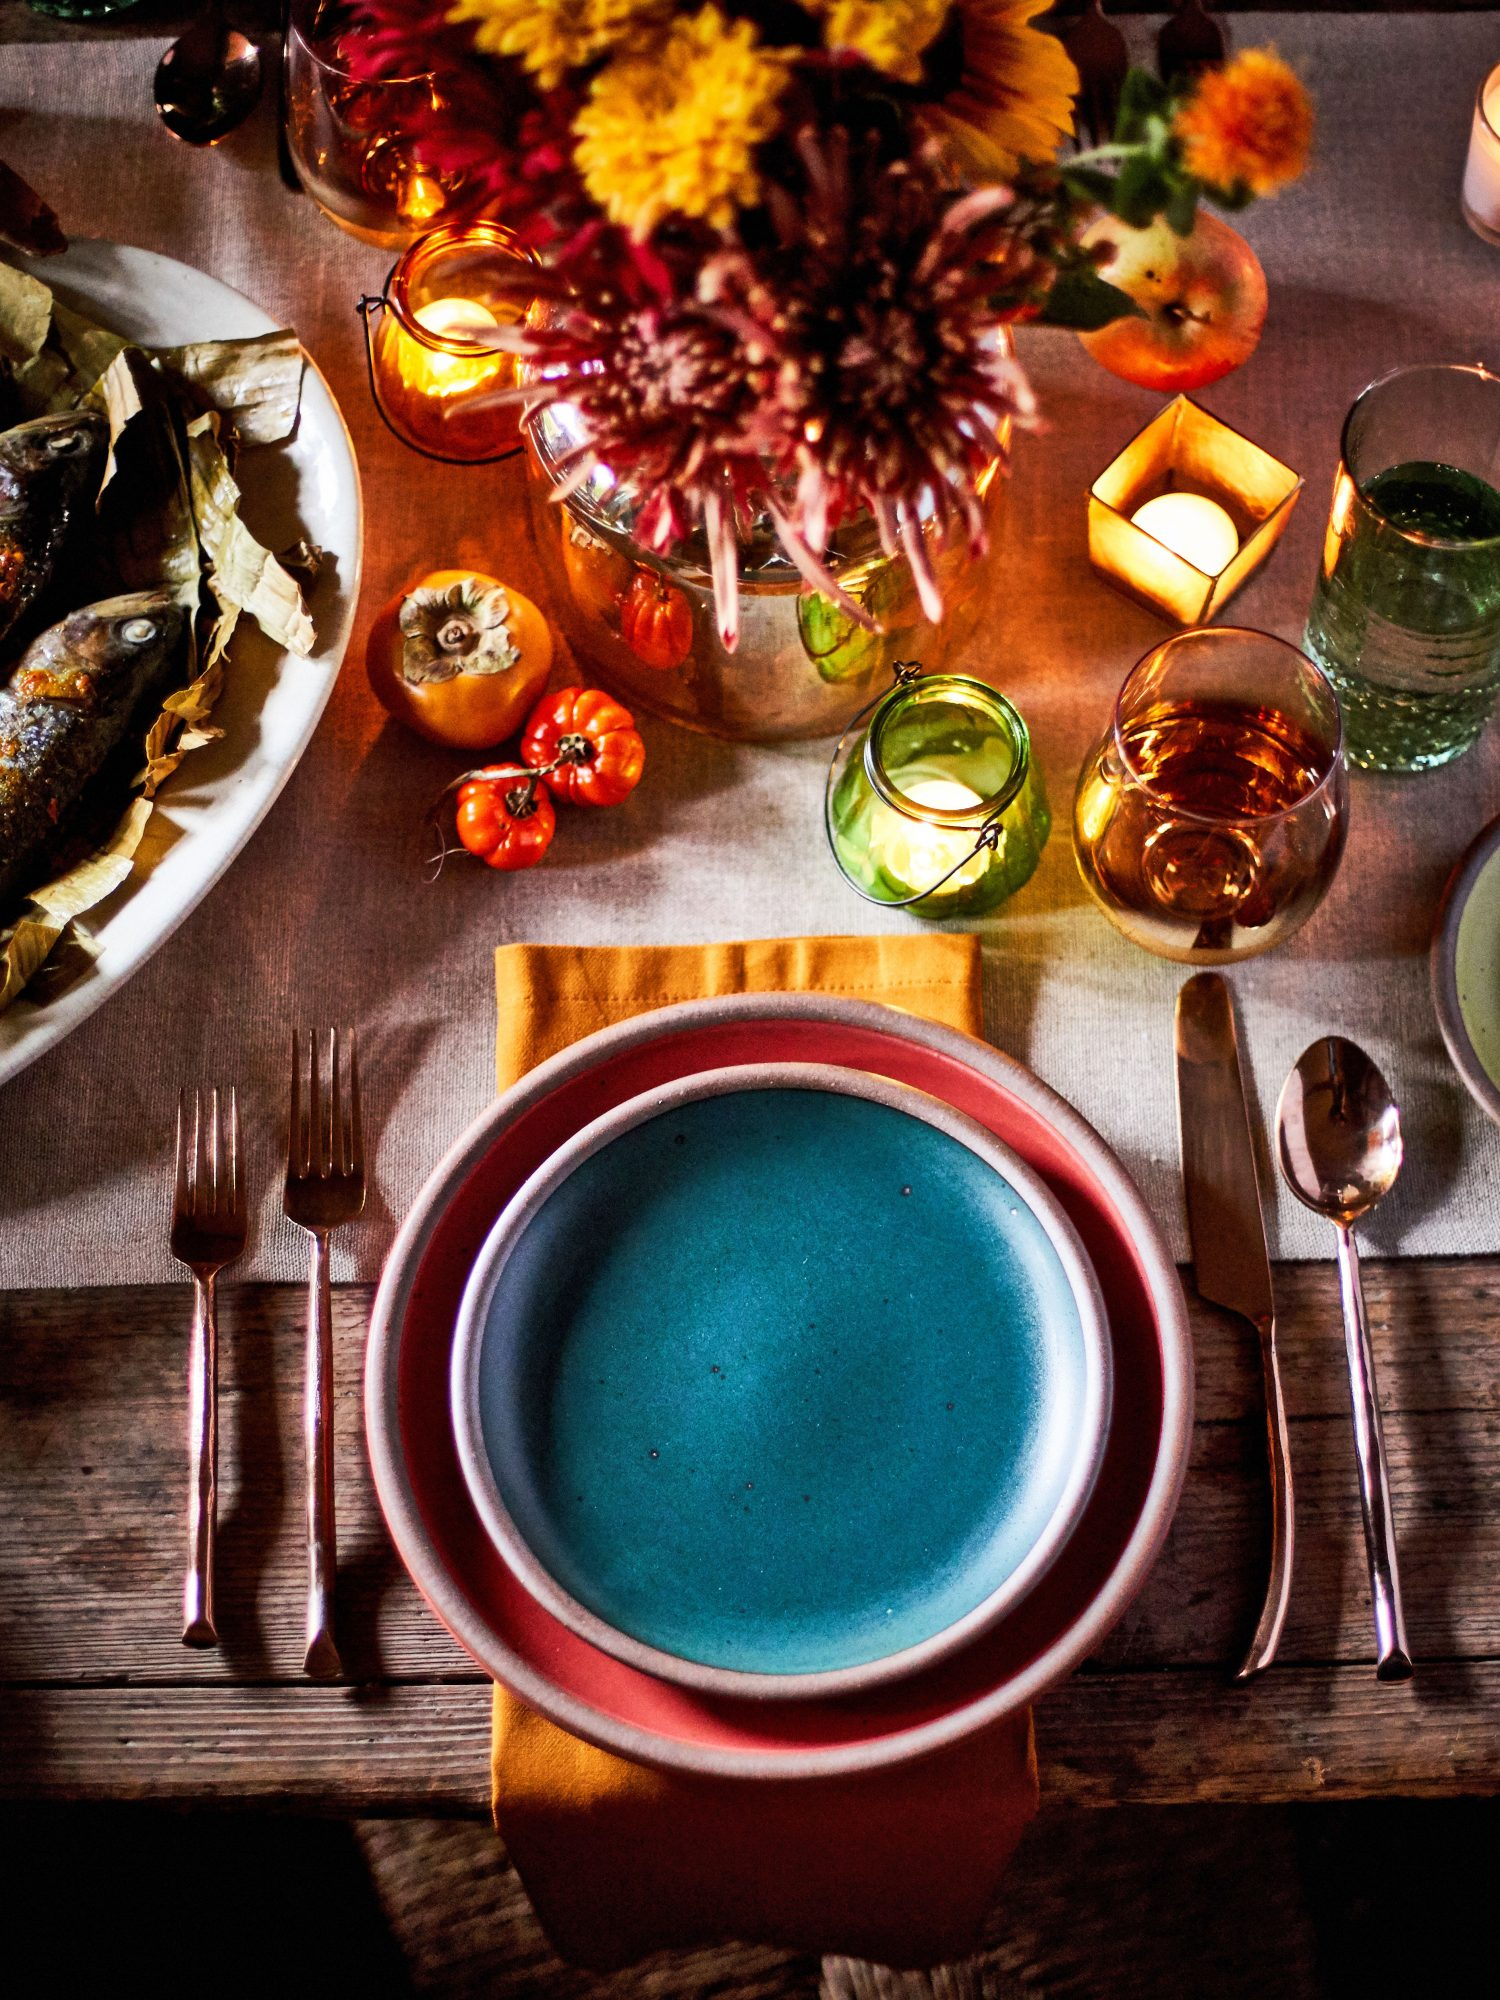 Orange, Red and Teal Outdoor Table Setting for Fall